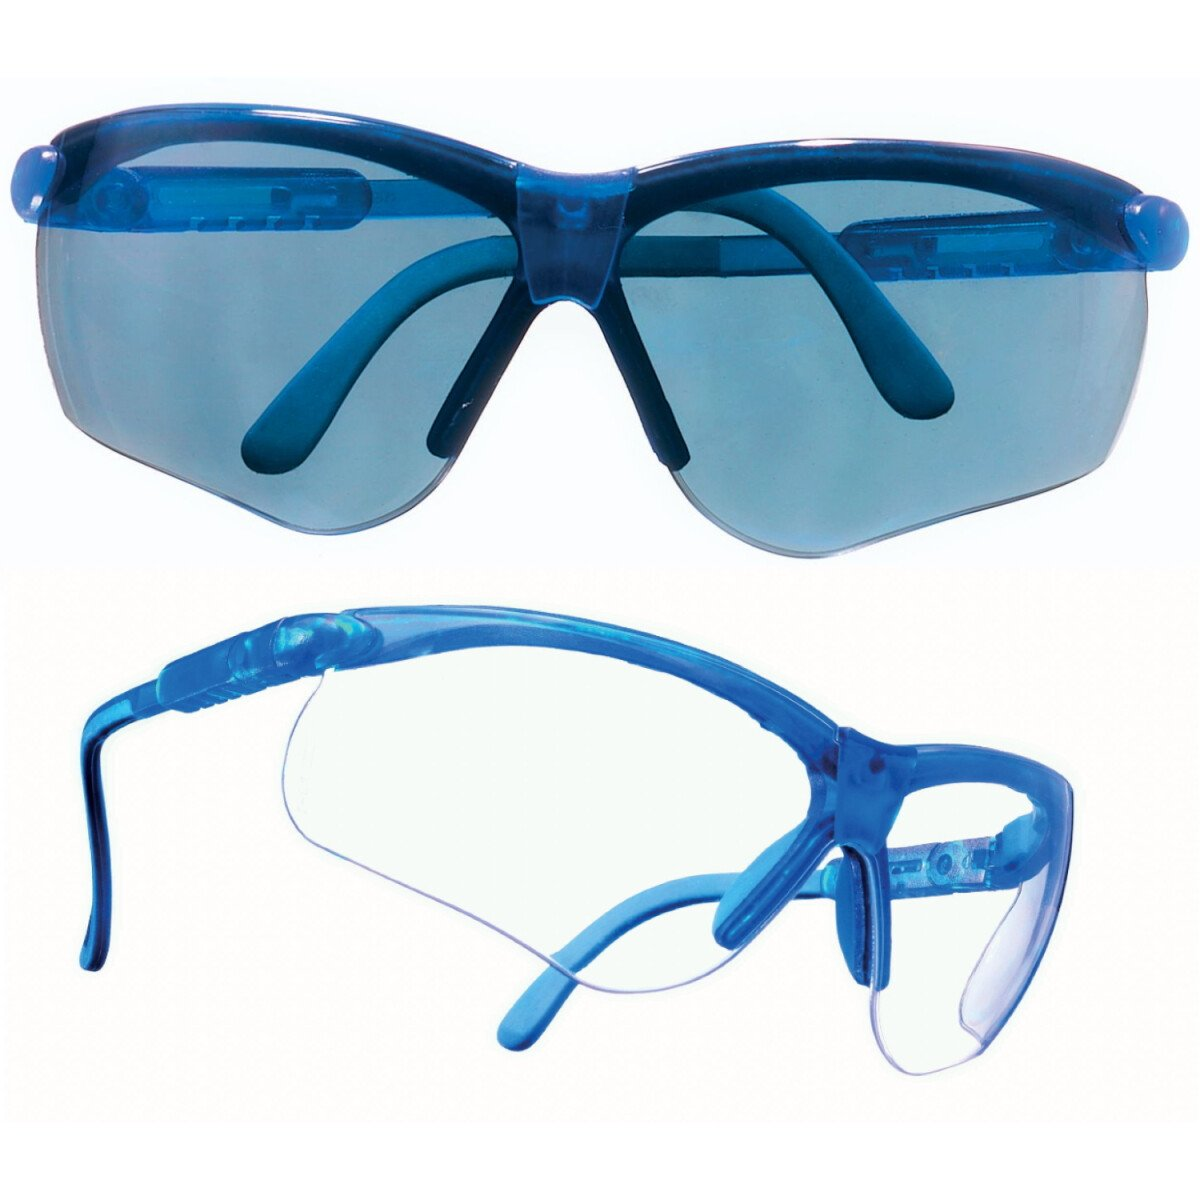 MSA PERSPECTA 010 Antifog Smoke Tinted Lens Safety Spectacles 10045644